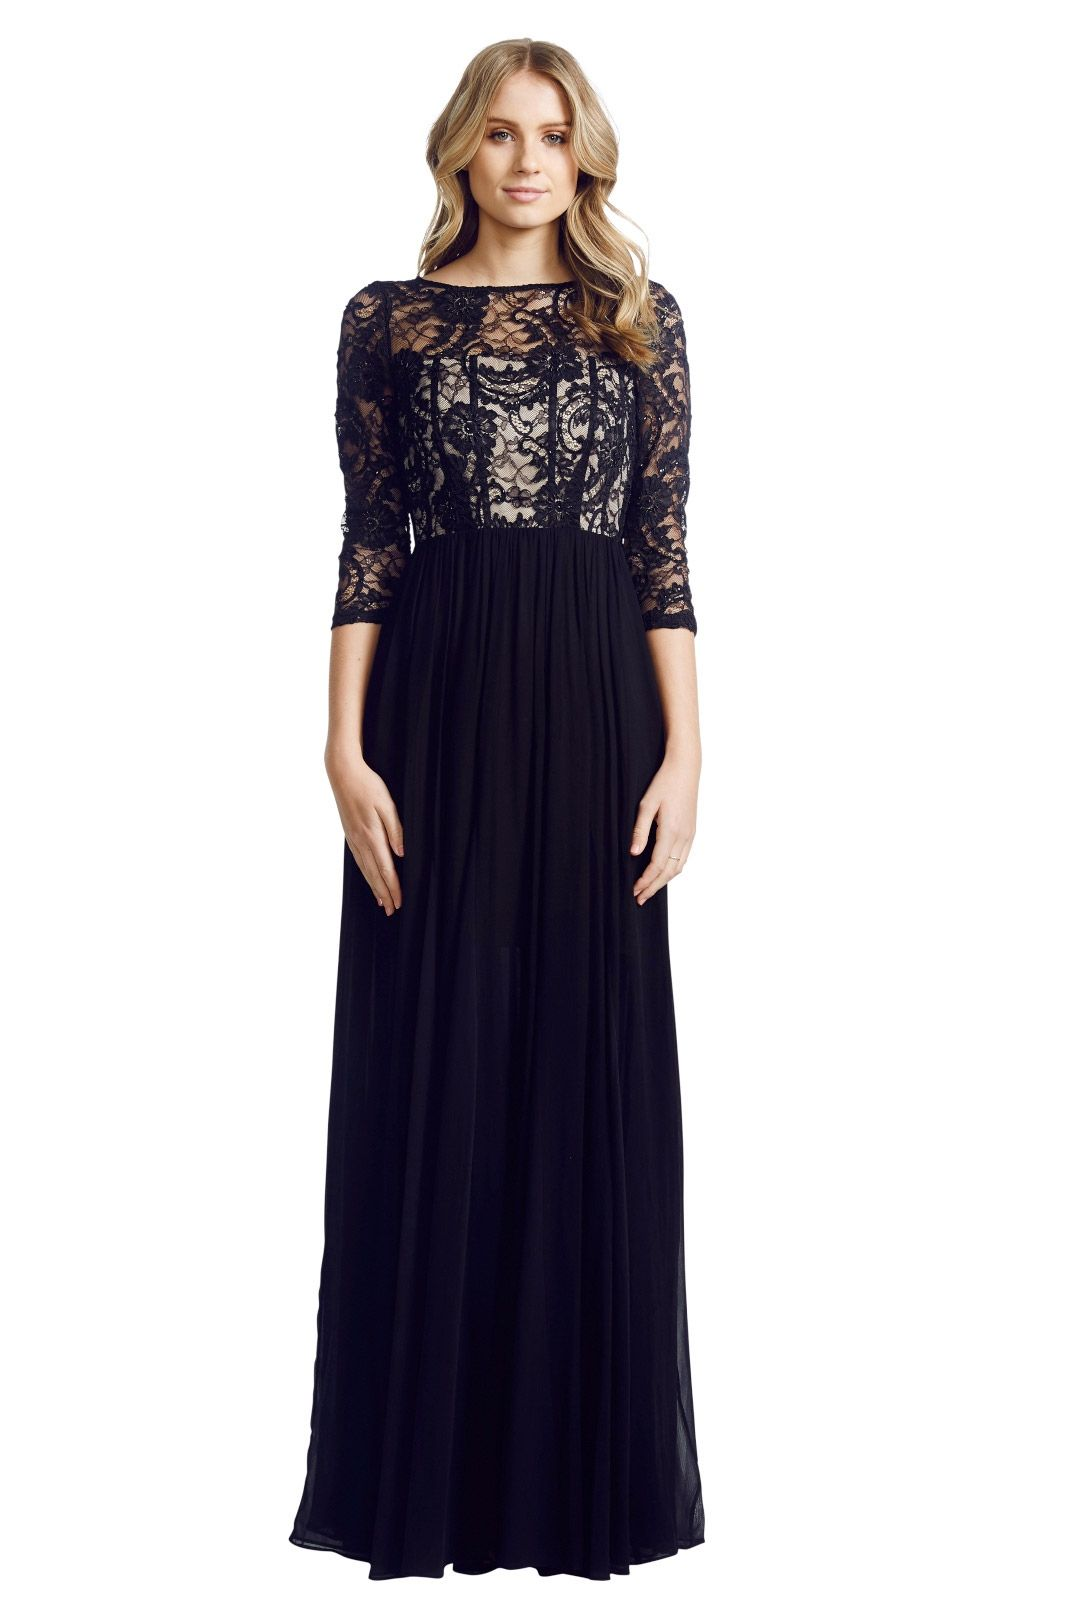 Alice and Olivia - Robinson Sequined Lace and Silk-Georgette Gown - Black - Front